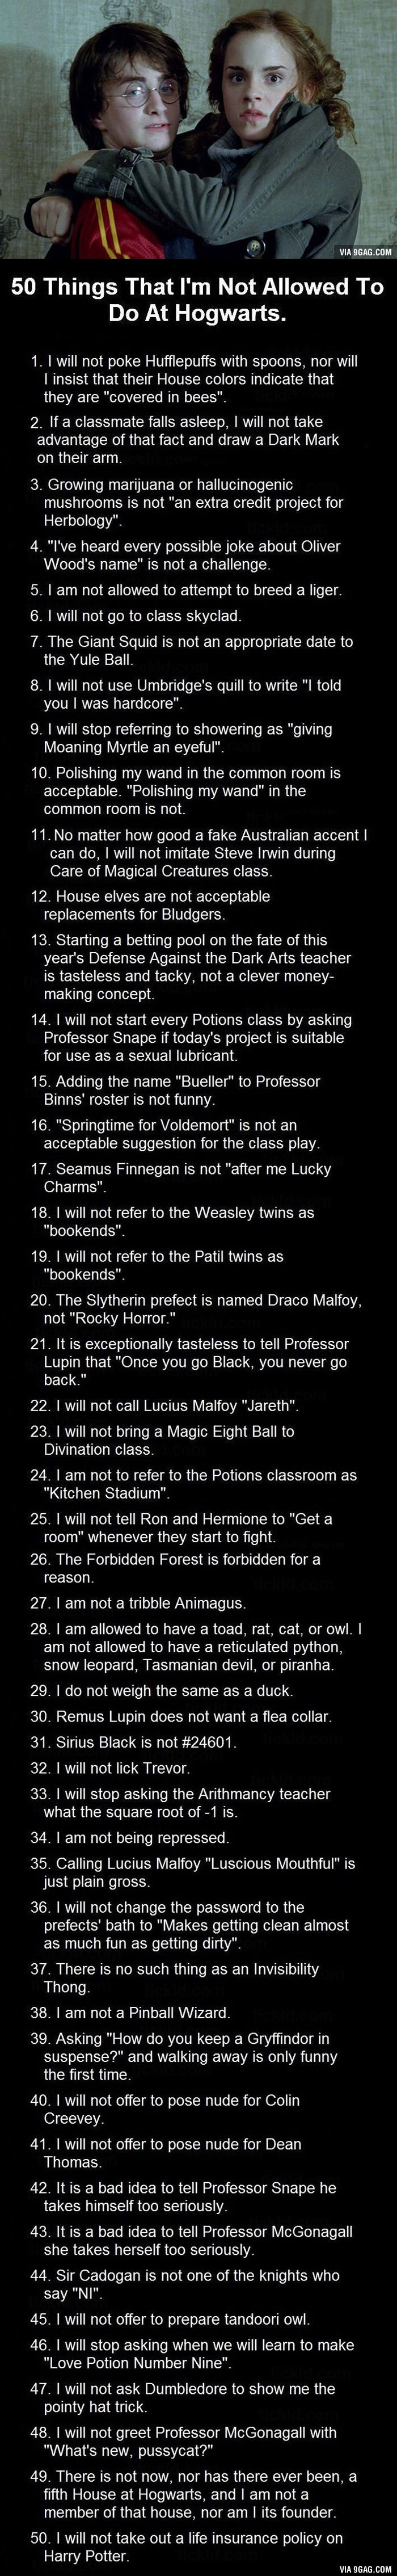 50 Things I'm Not Allowed To Do At Hogwarts. These Are Bloody Brilliant. #23 is totally something I would do....